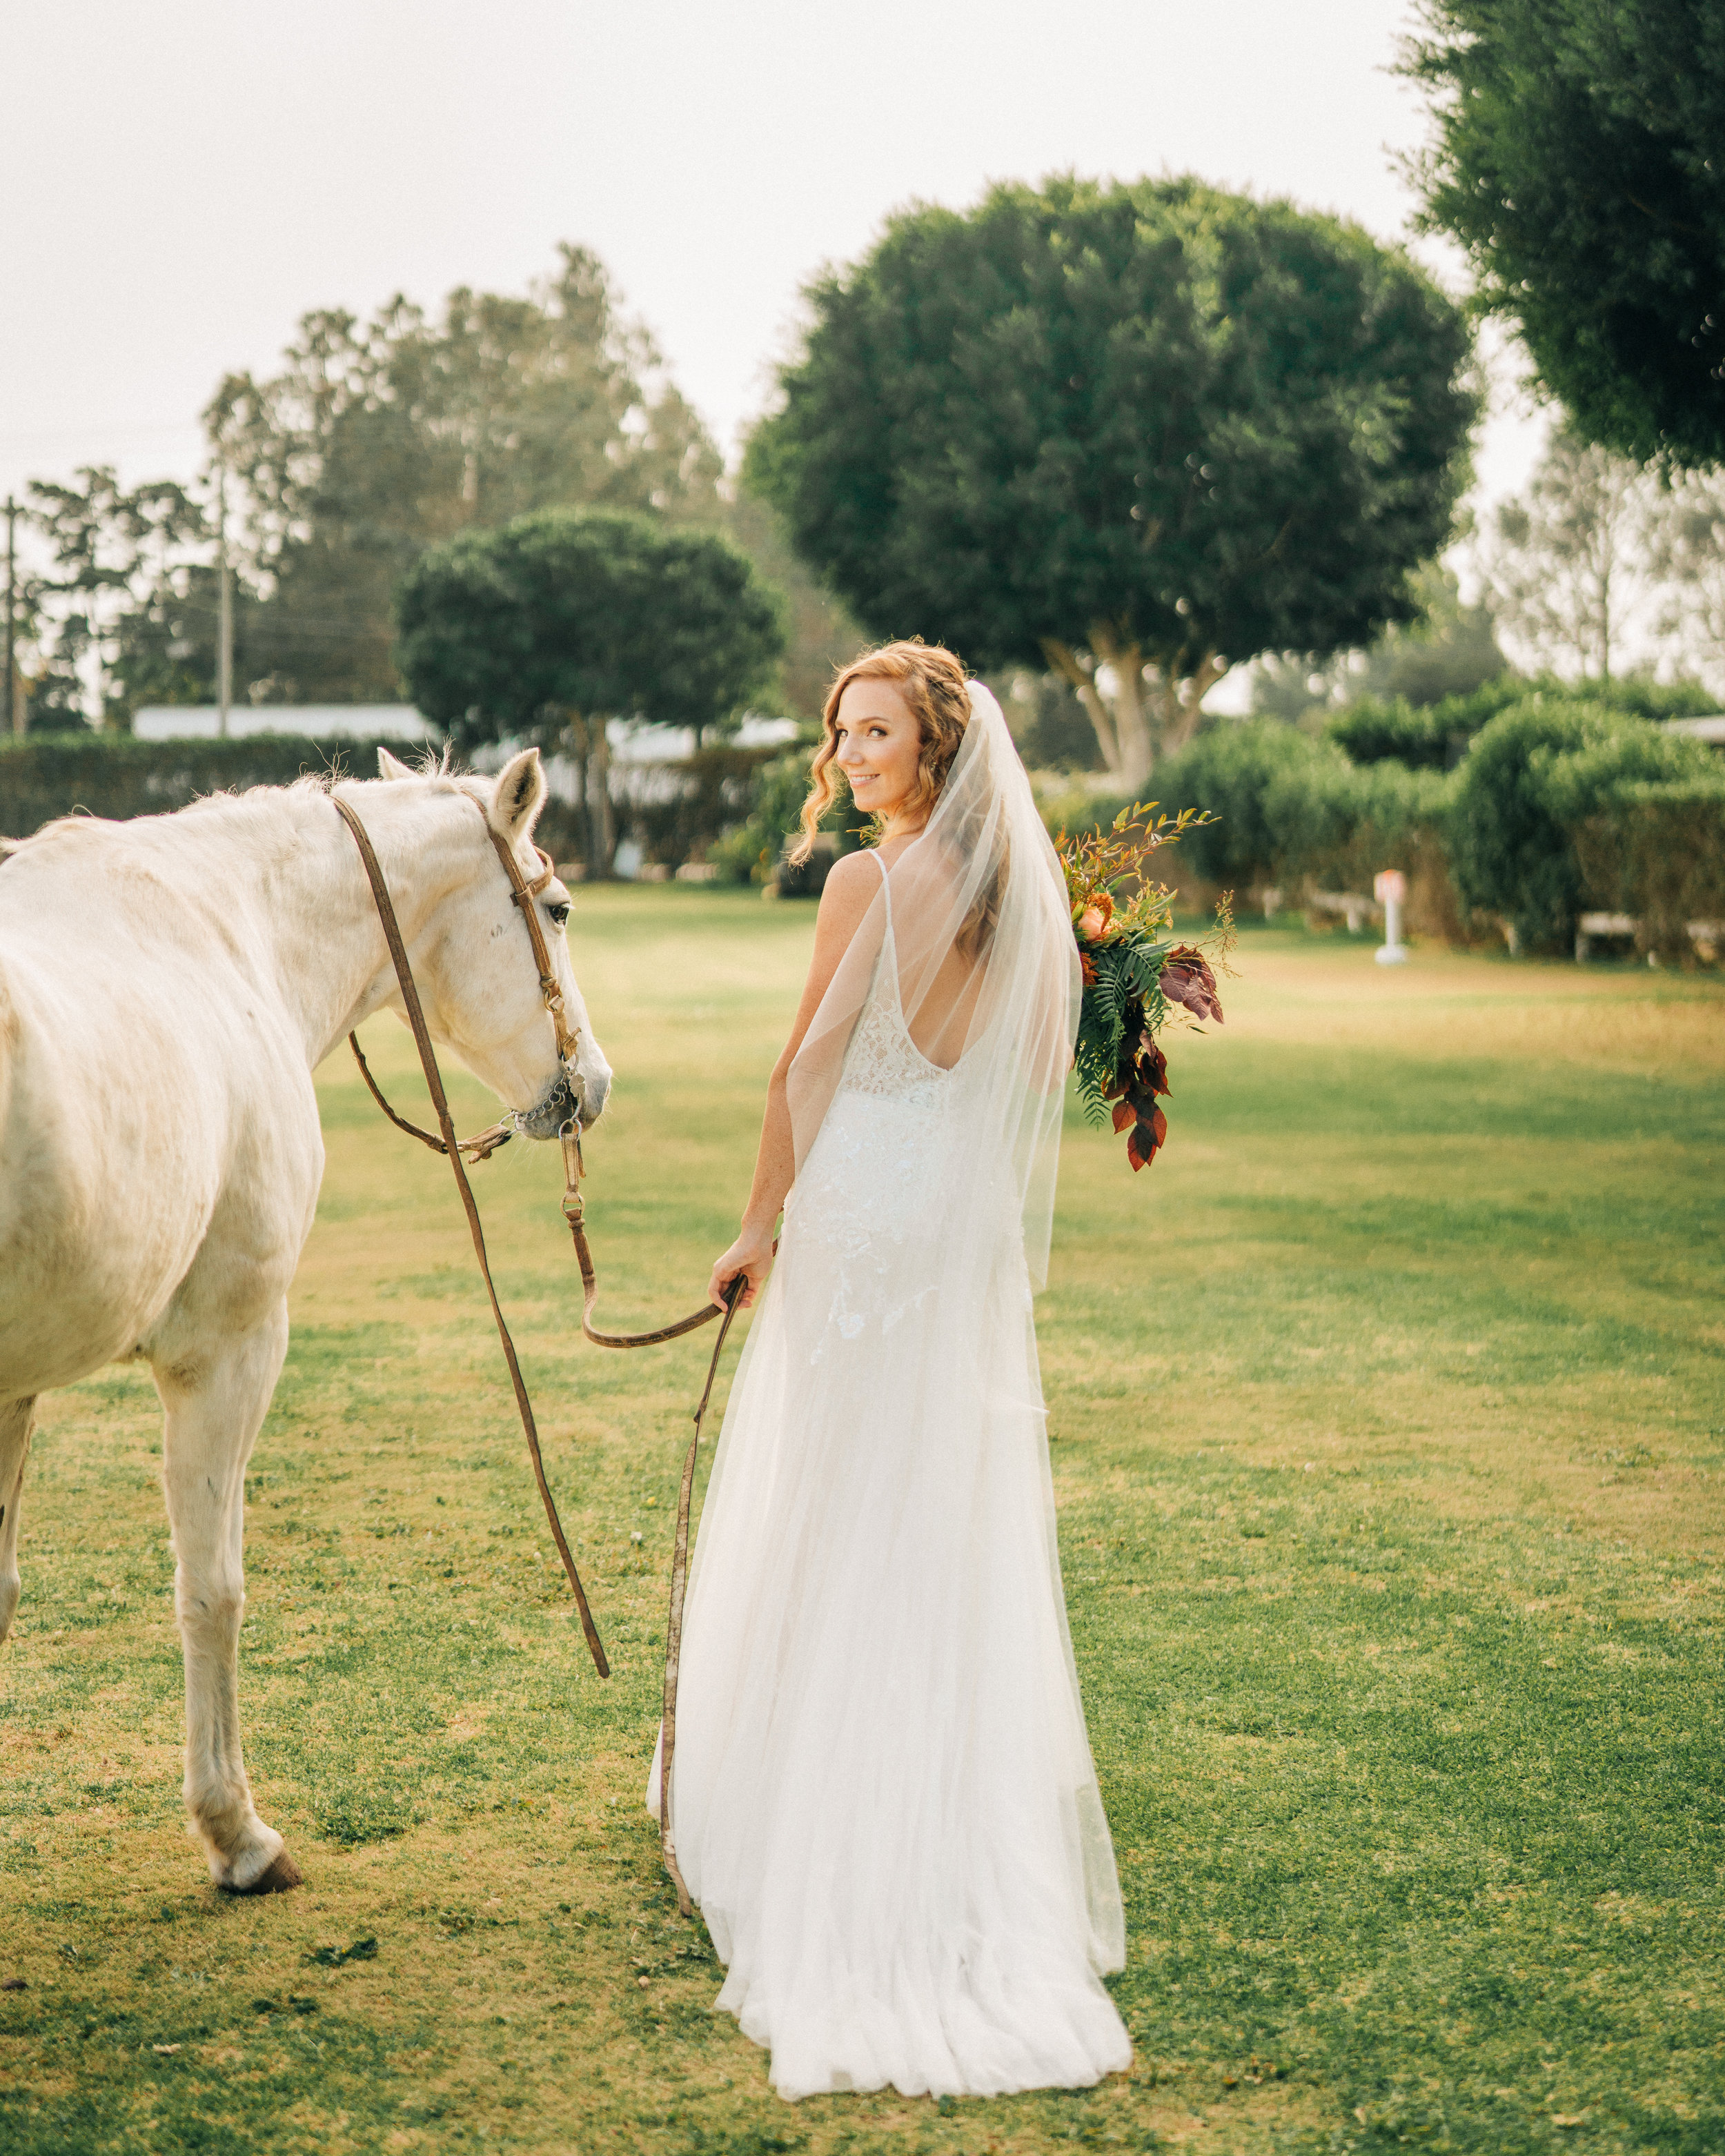 www.santabarbarawedding.com | Brandon Bibbins Photography | The Cottages at Polo Run | Lucy Salgado | Bride Leads Horse